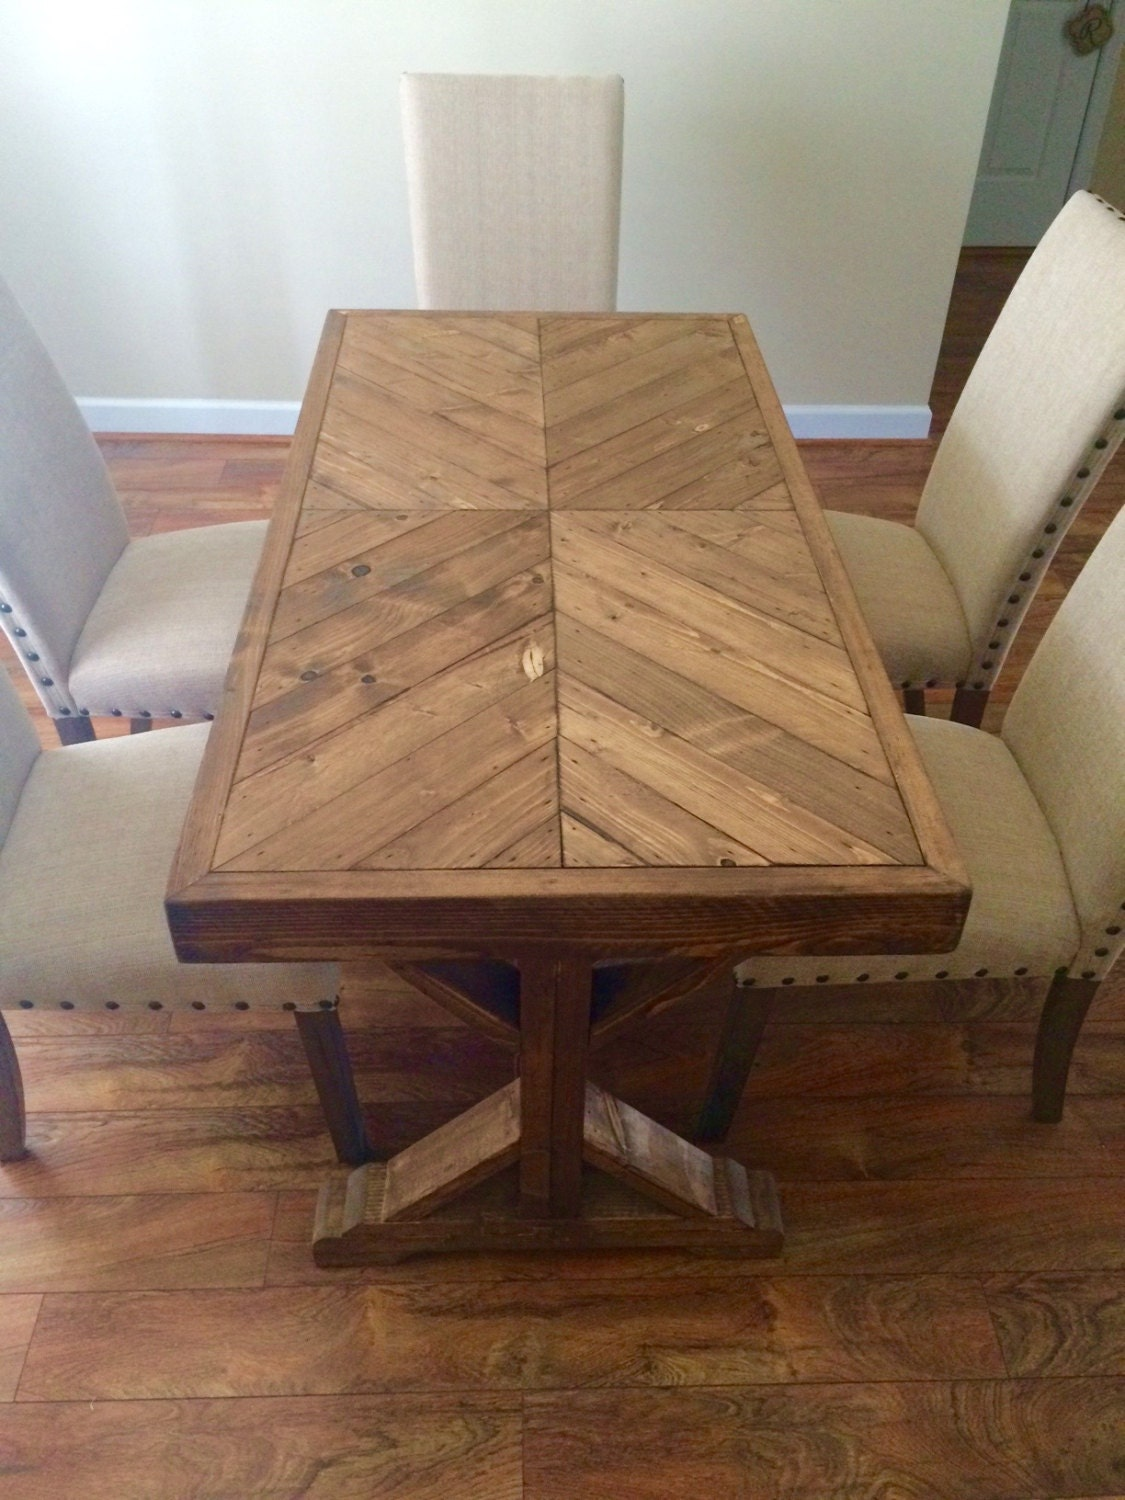 Farmhouse table rustic table kitchen table chevron table